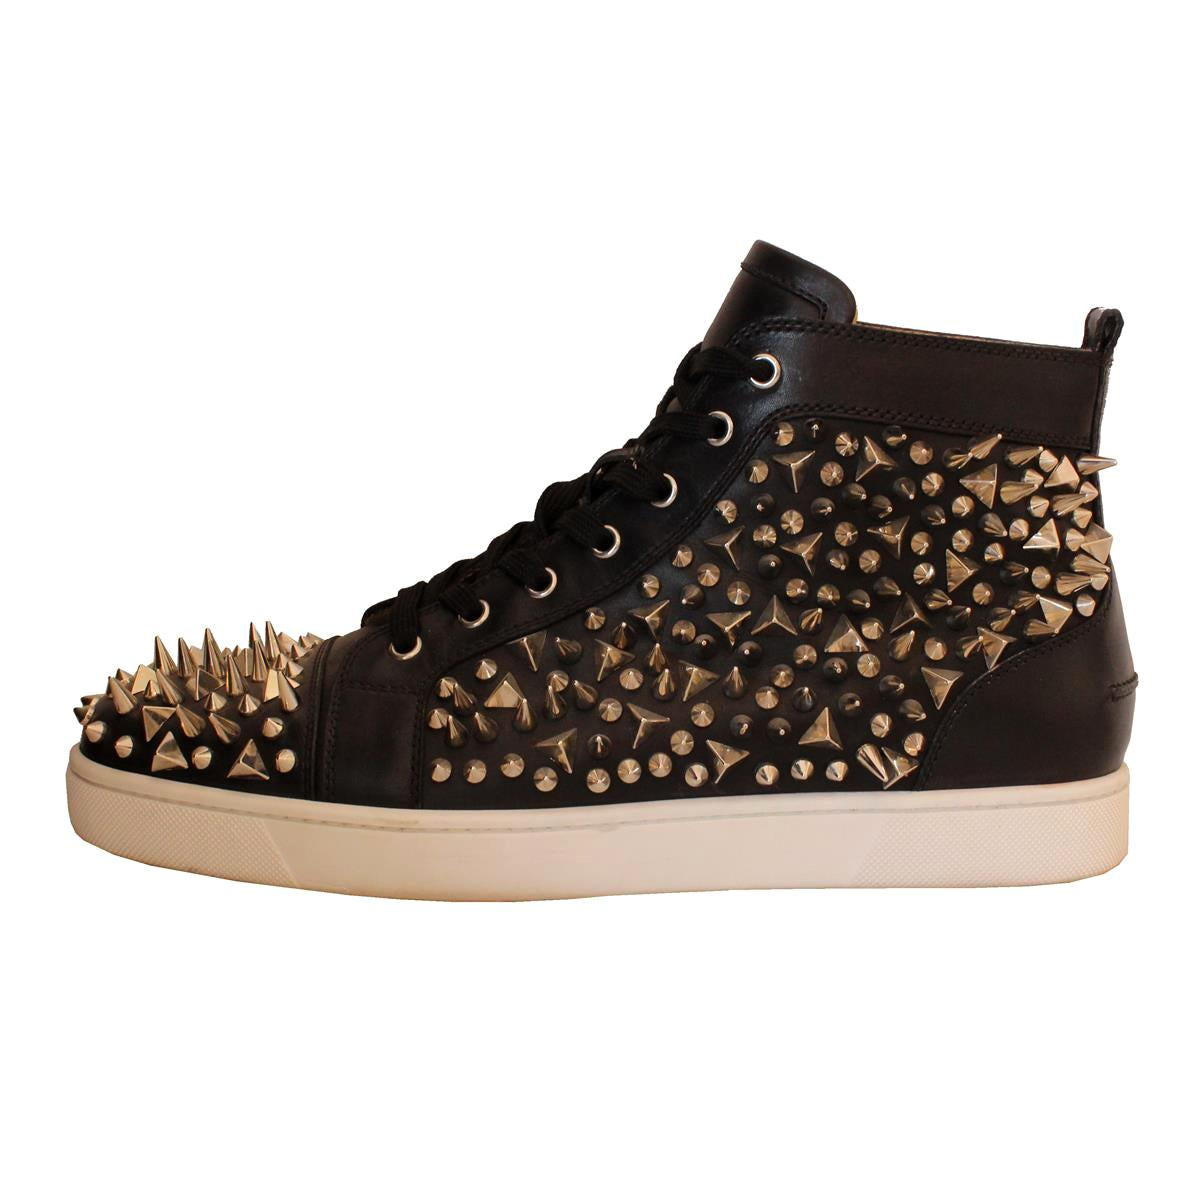 Christian Louboutin Mens Studded Sneakers 44 at 1stdibs